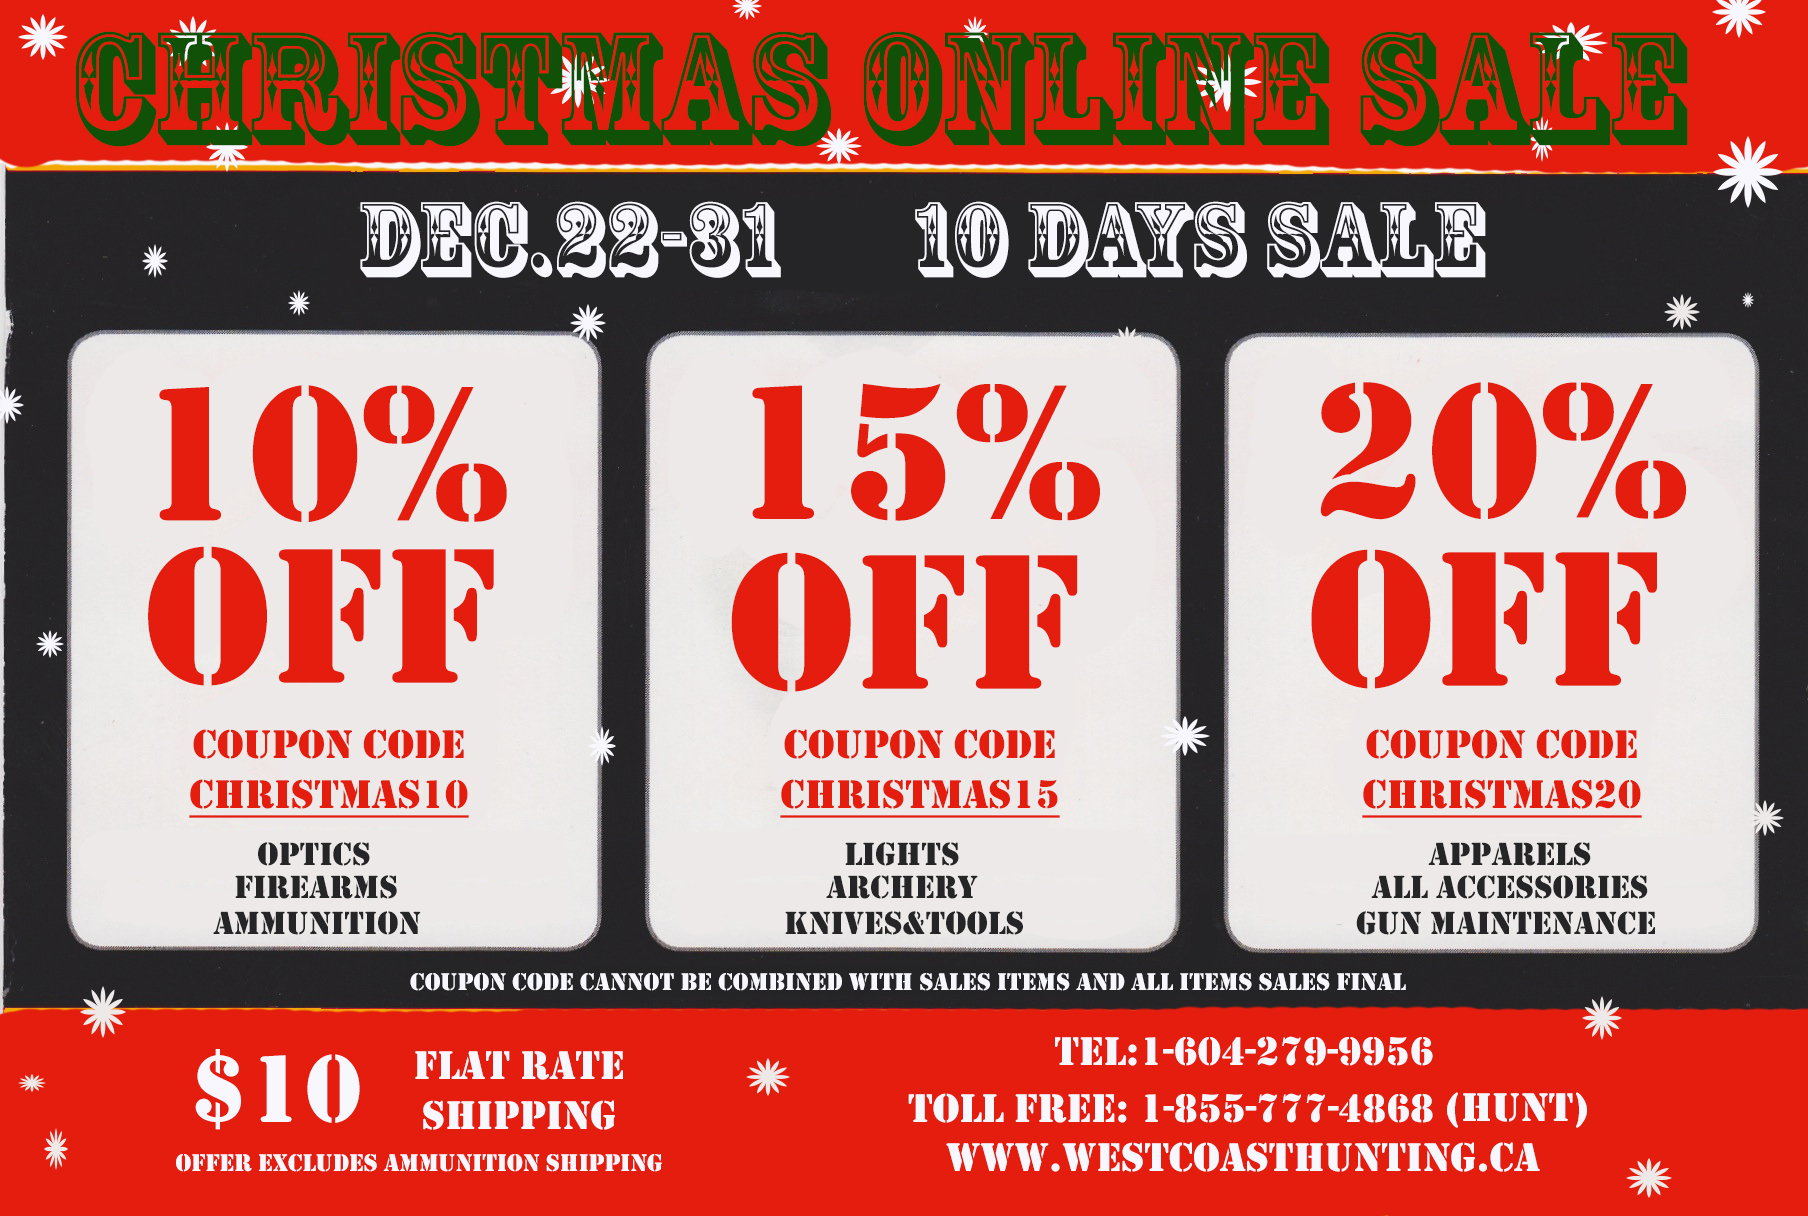 Online fabric & trim discount is limited to 10 yards, single cut. Excludes CRICUT® products, candy & snack products, gum & mints, gift cards, custom orders, .